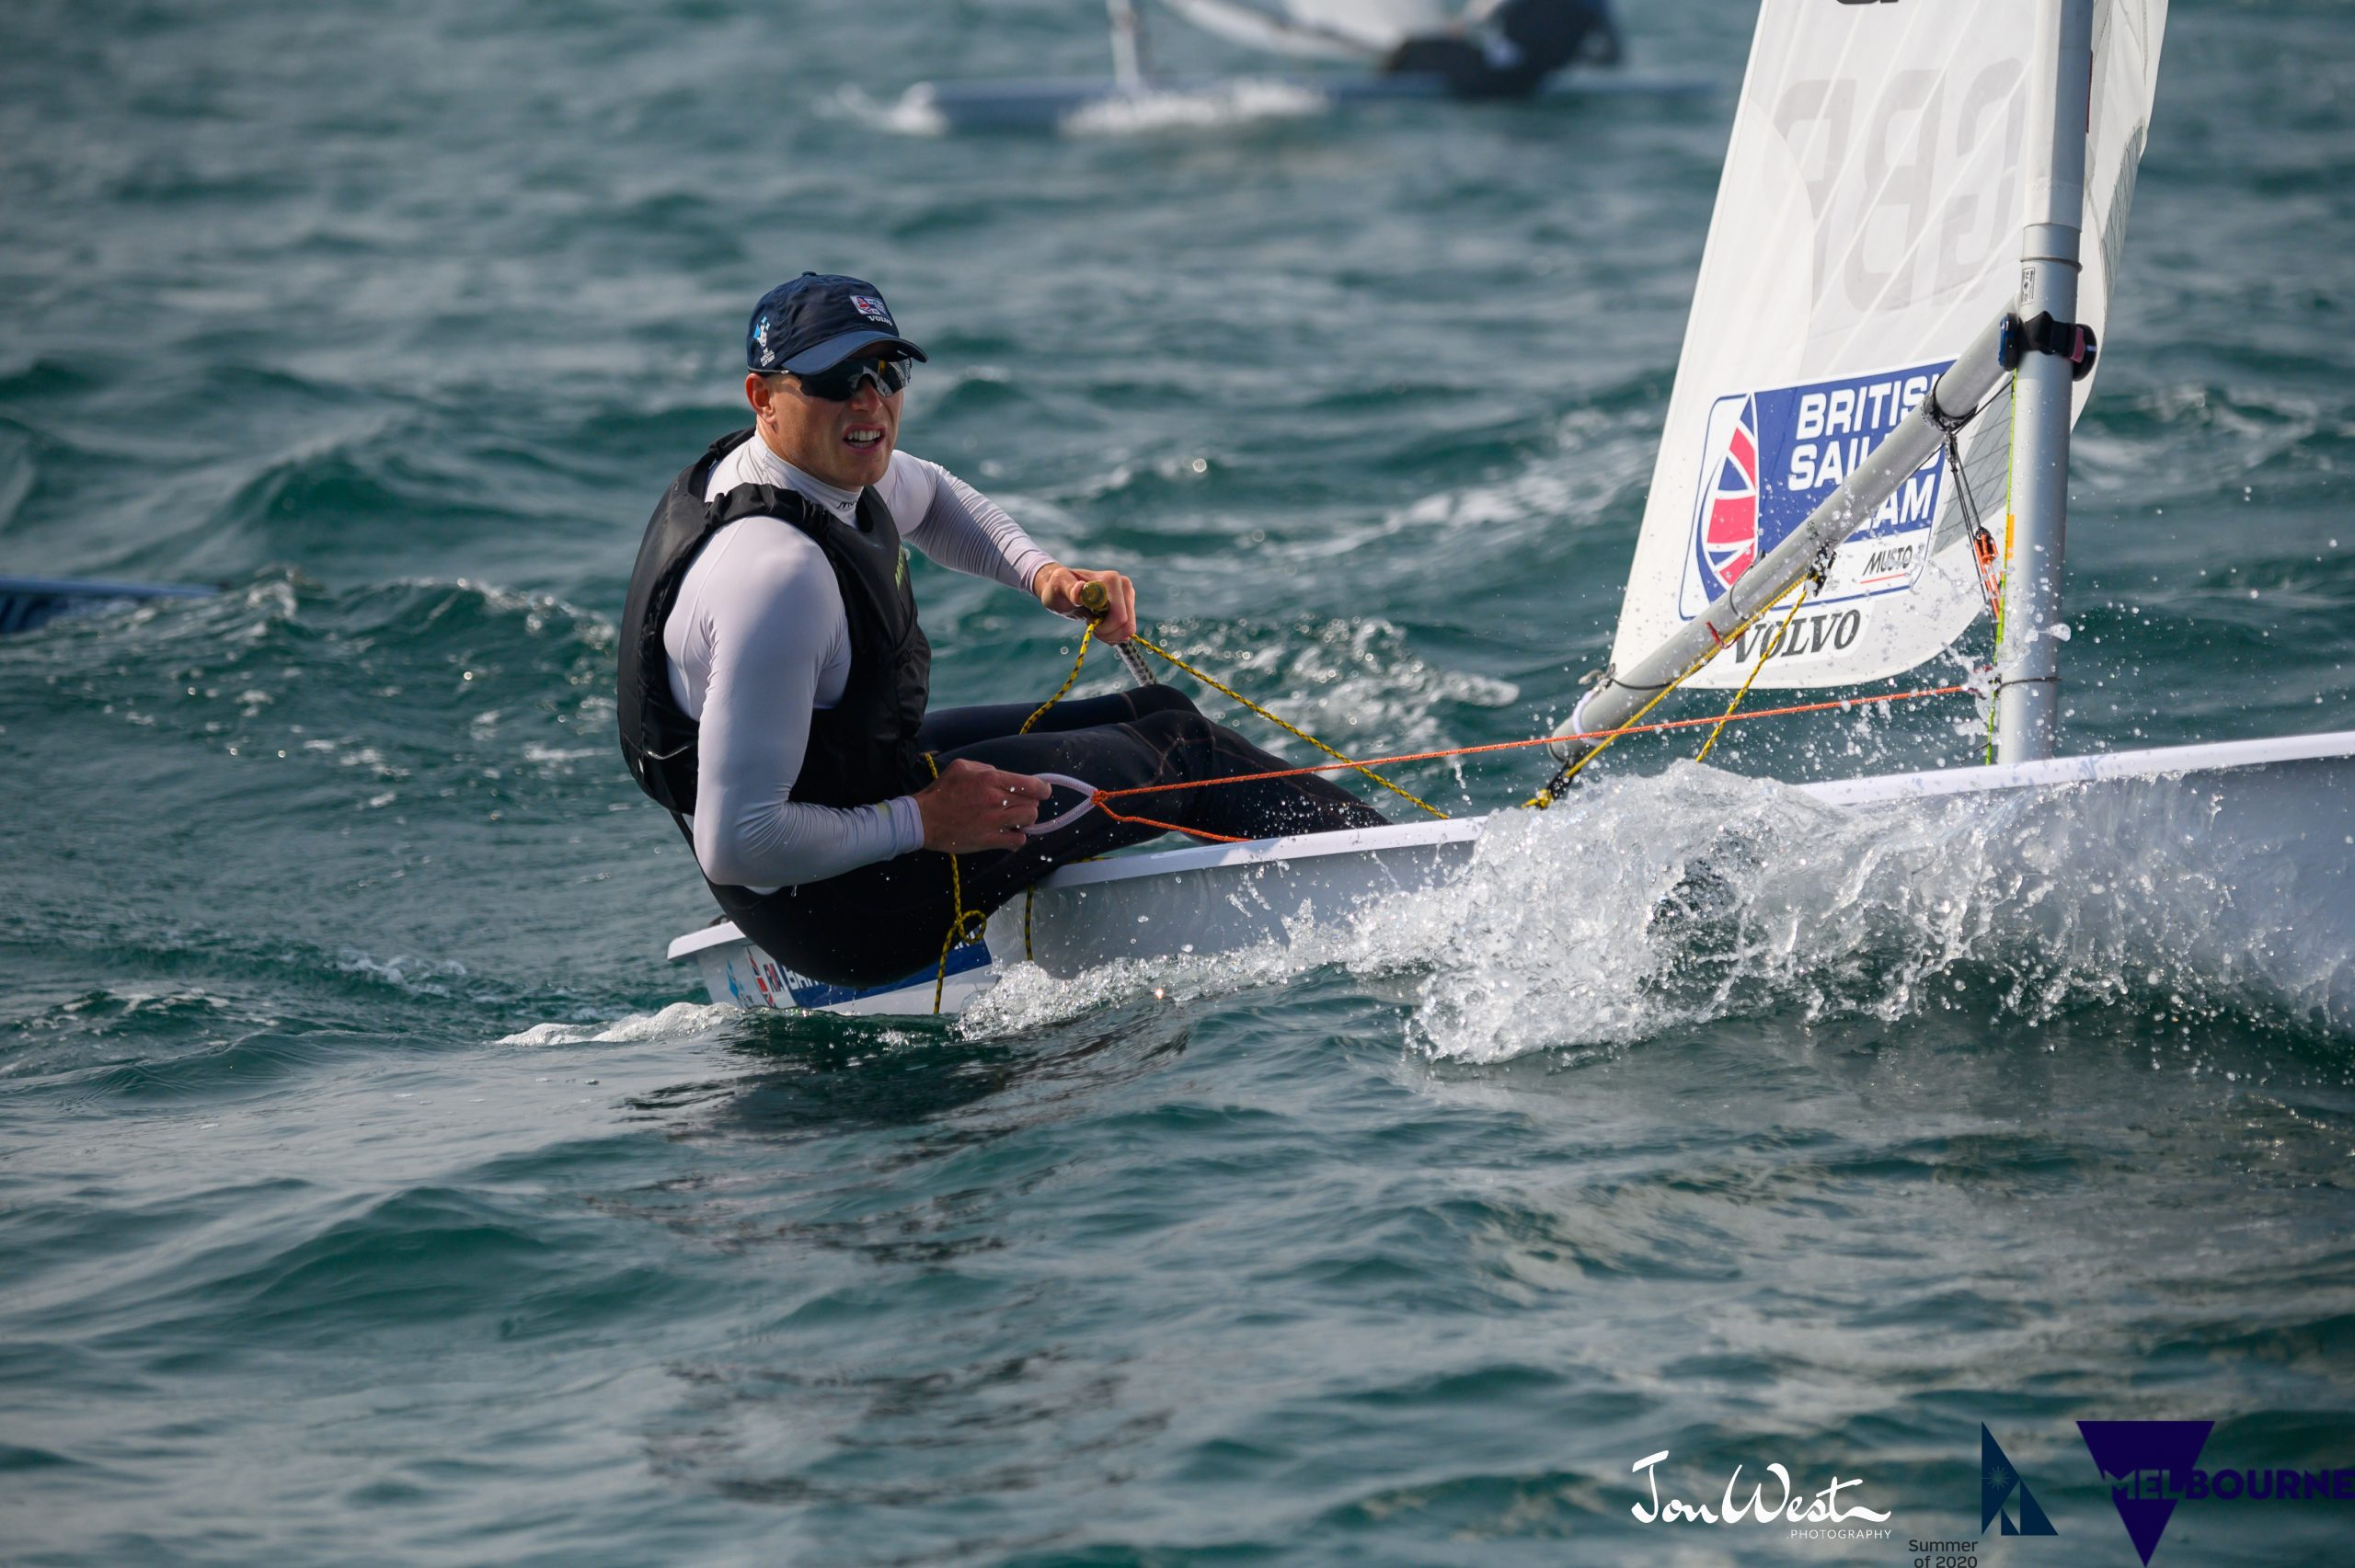 Nick Thompson (GBR) had a perfect opening day at the Australian Laser Championships. Photo Jon West Photography.